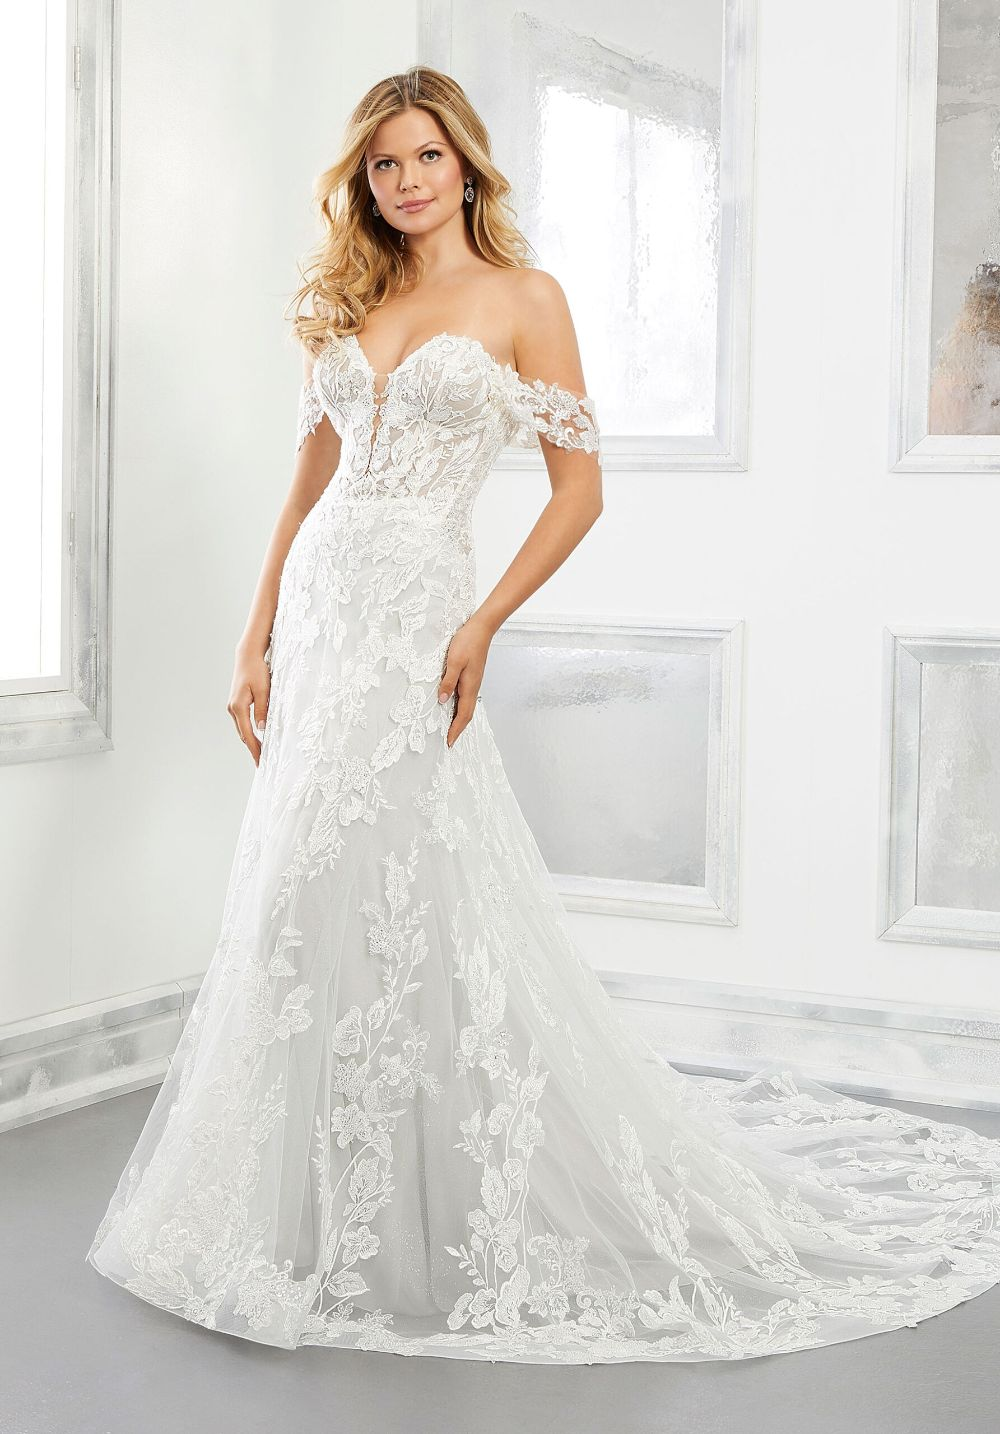 BLOSSOM 2307 by Mori Lee by Madeline Gardner